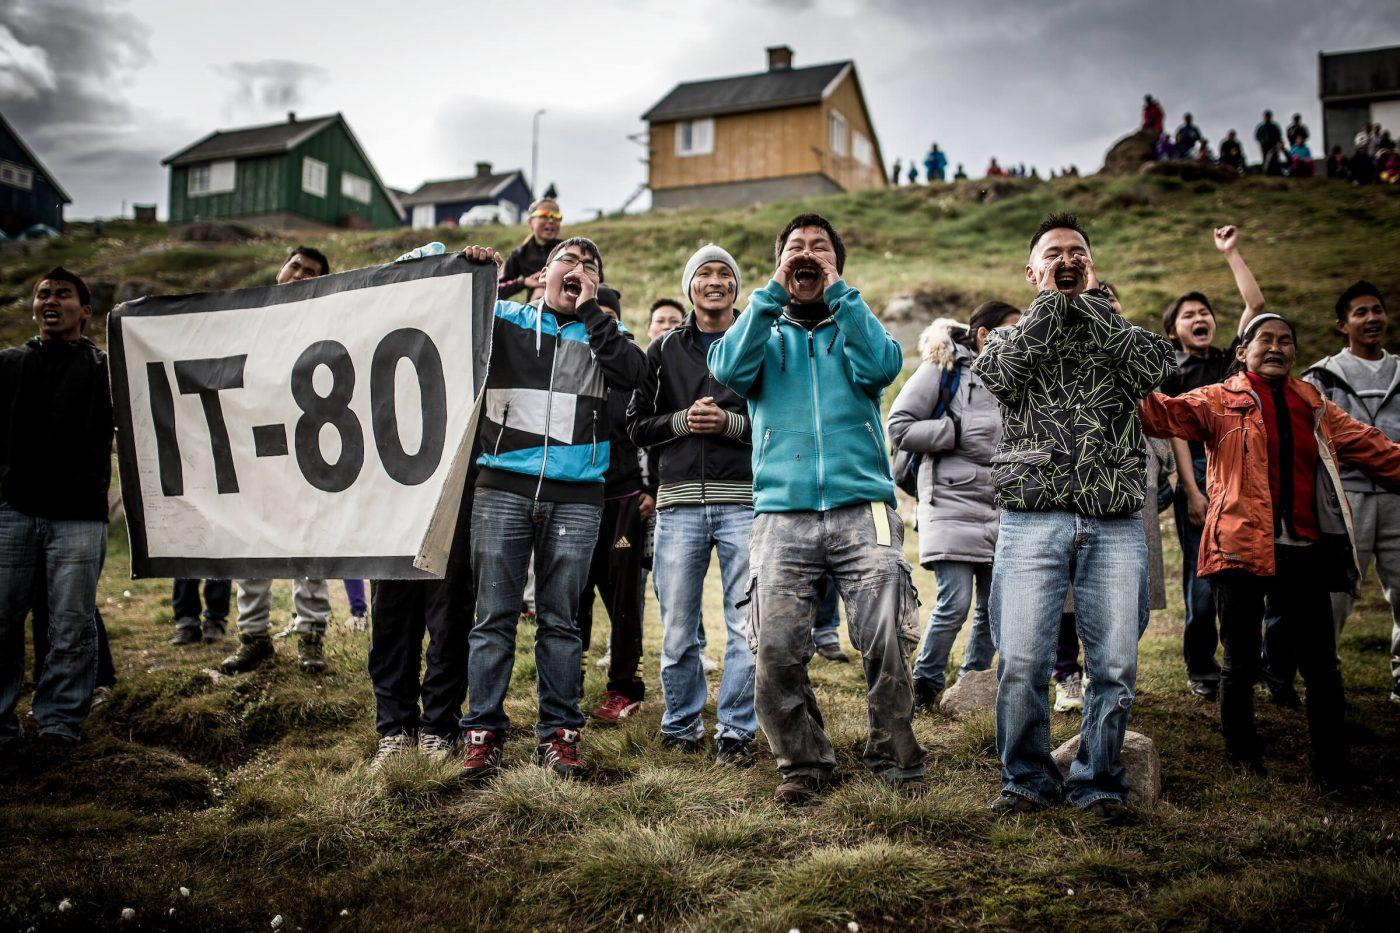 IT-80 football supporters from the village Isortoq at the 2013 East Greenland football championships. Photo by Mads Pihl - Visit Greenland